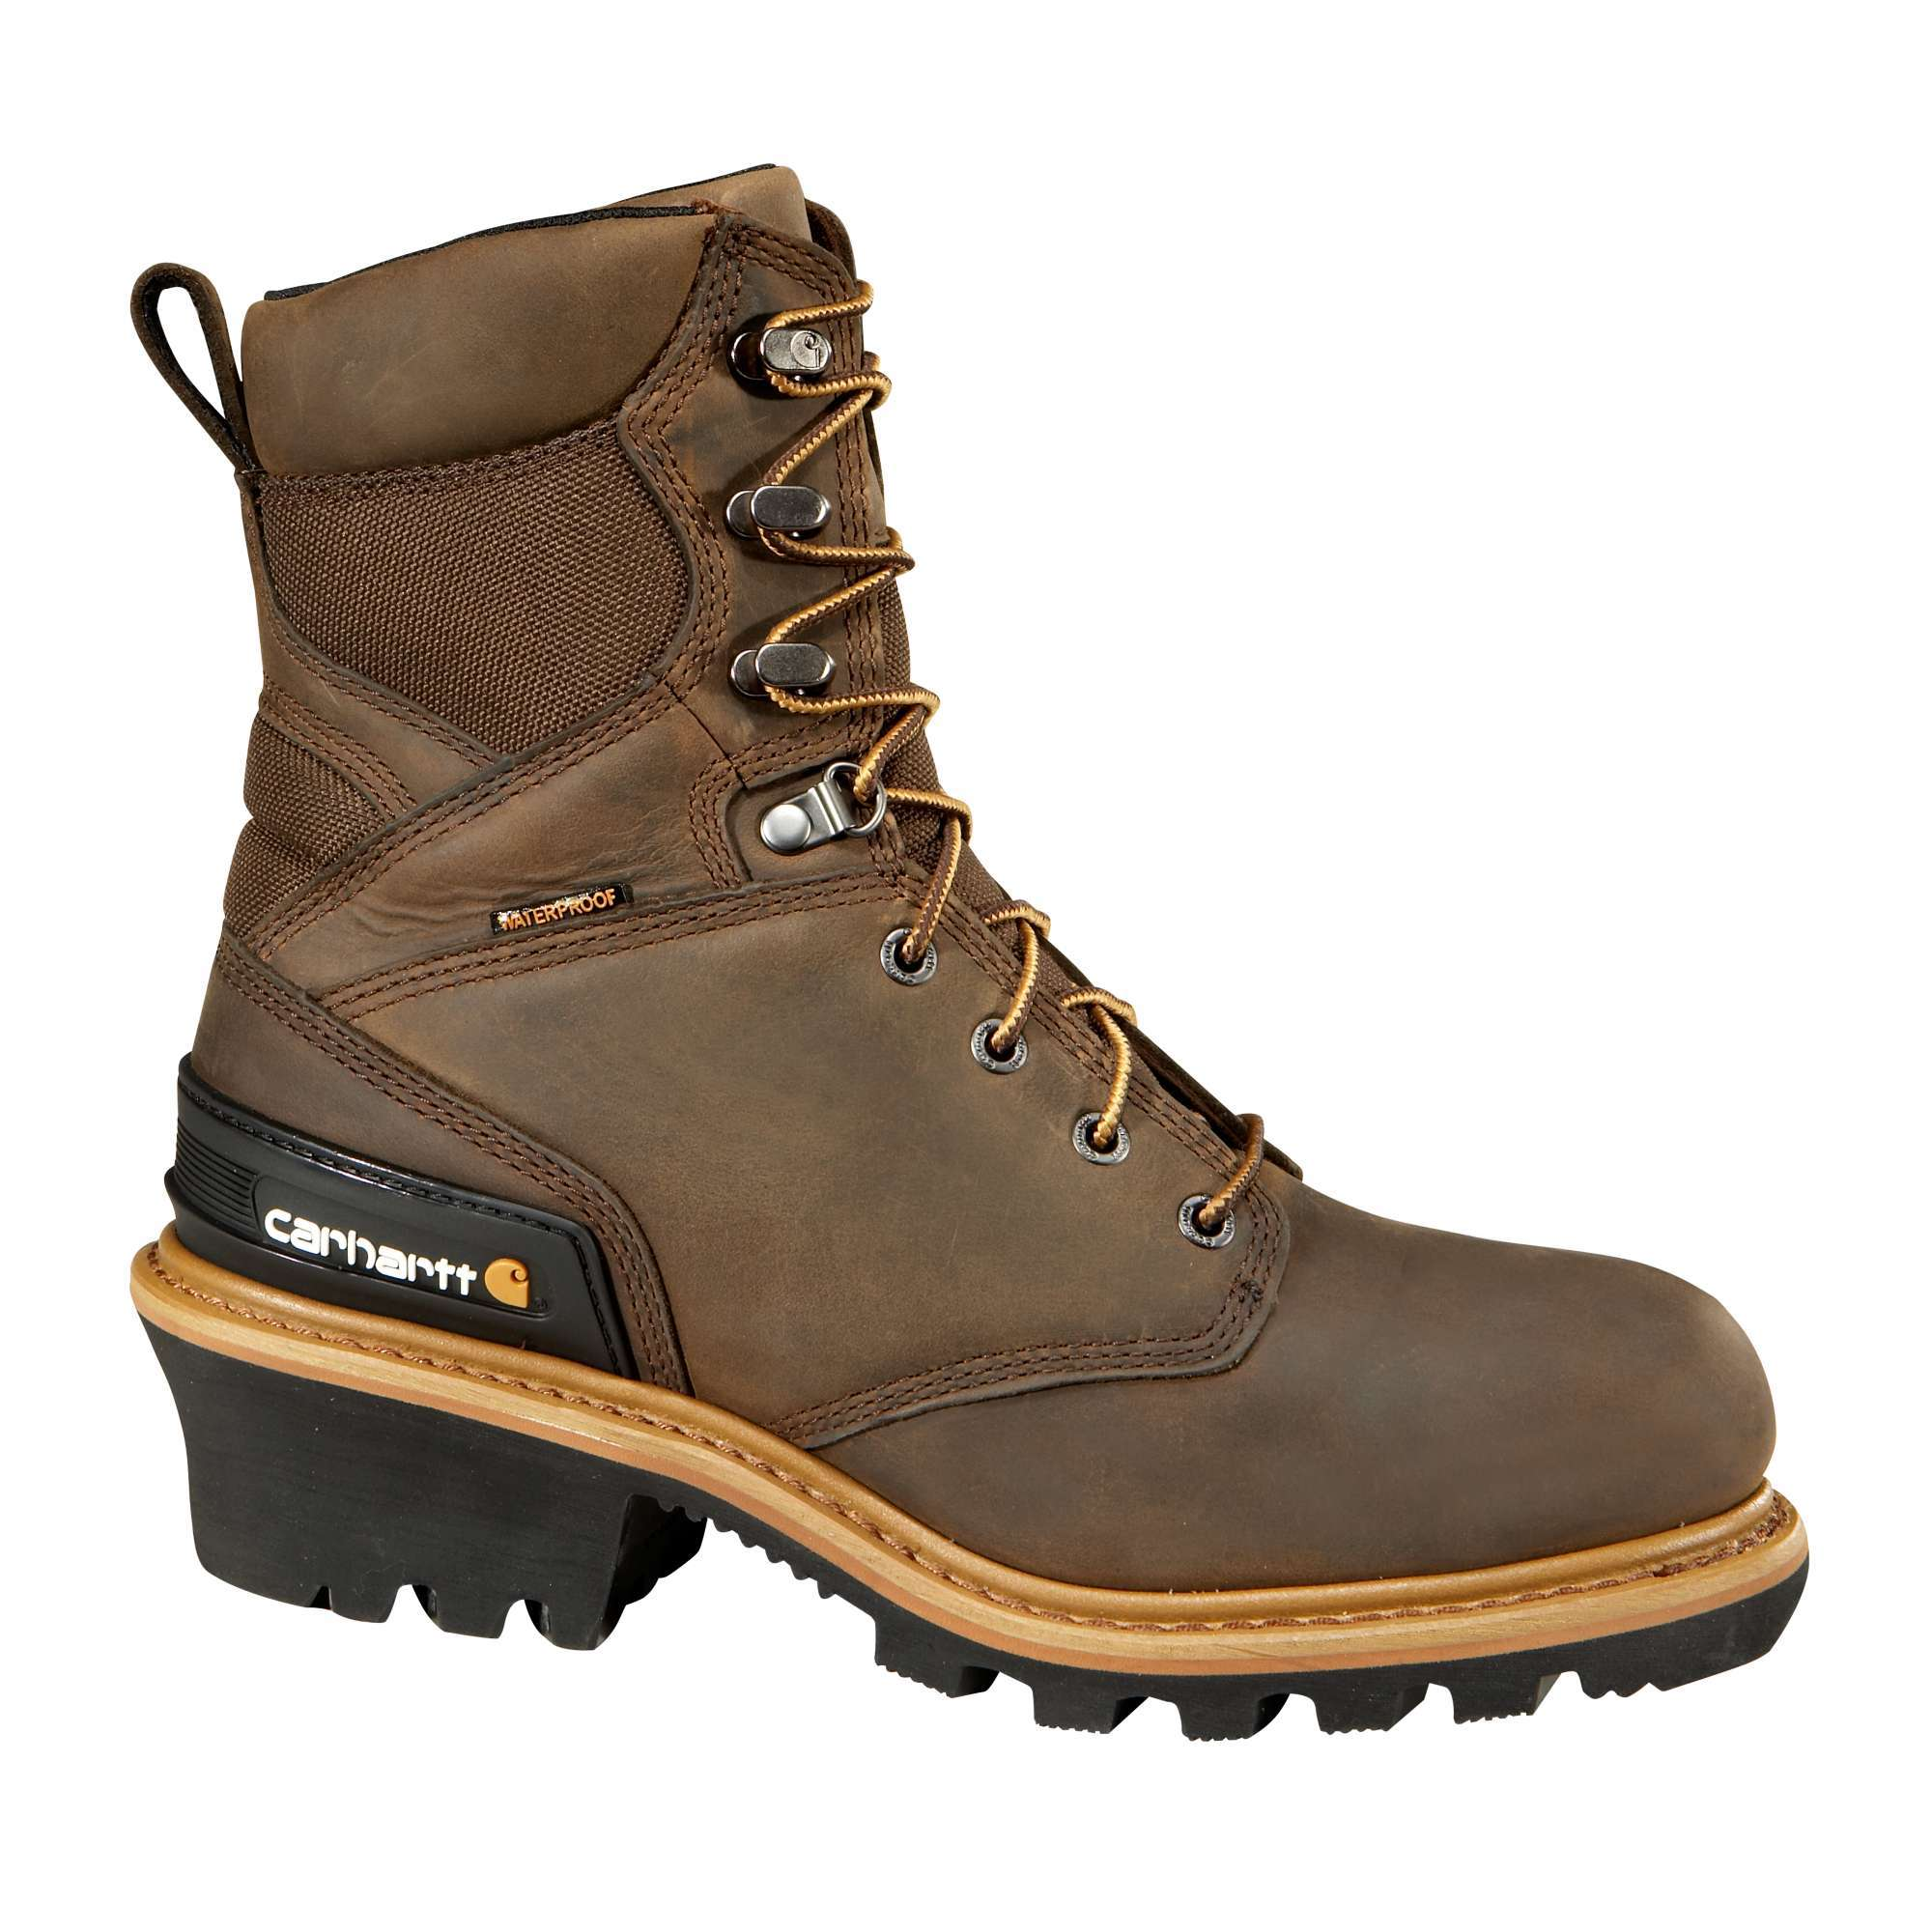 MEN'S 8-INCH INSULATED COMPOSITE TOE CLIMBING BOOT